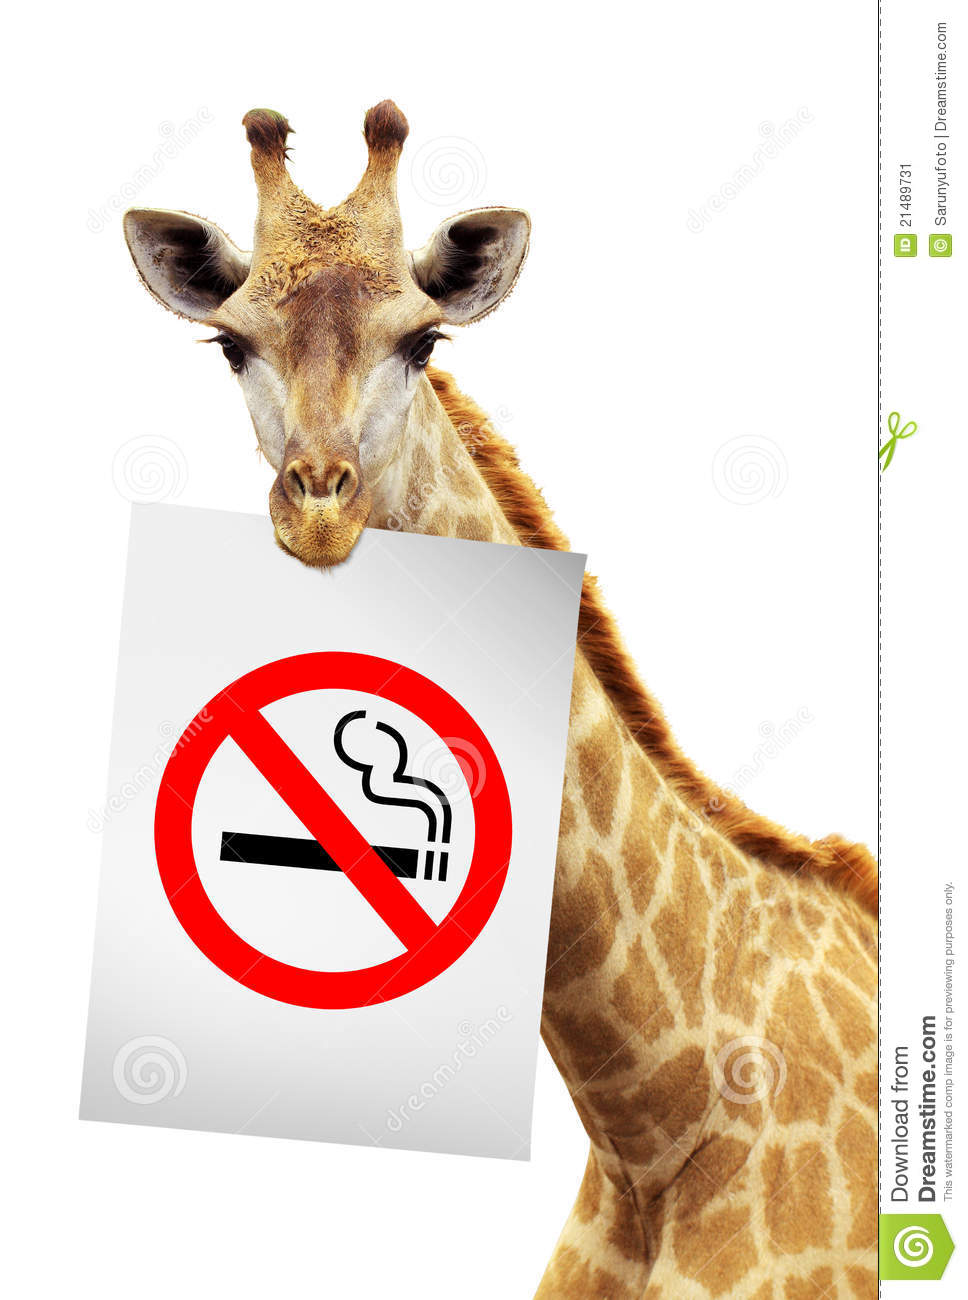 essay on no smoking no smoking logo